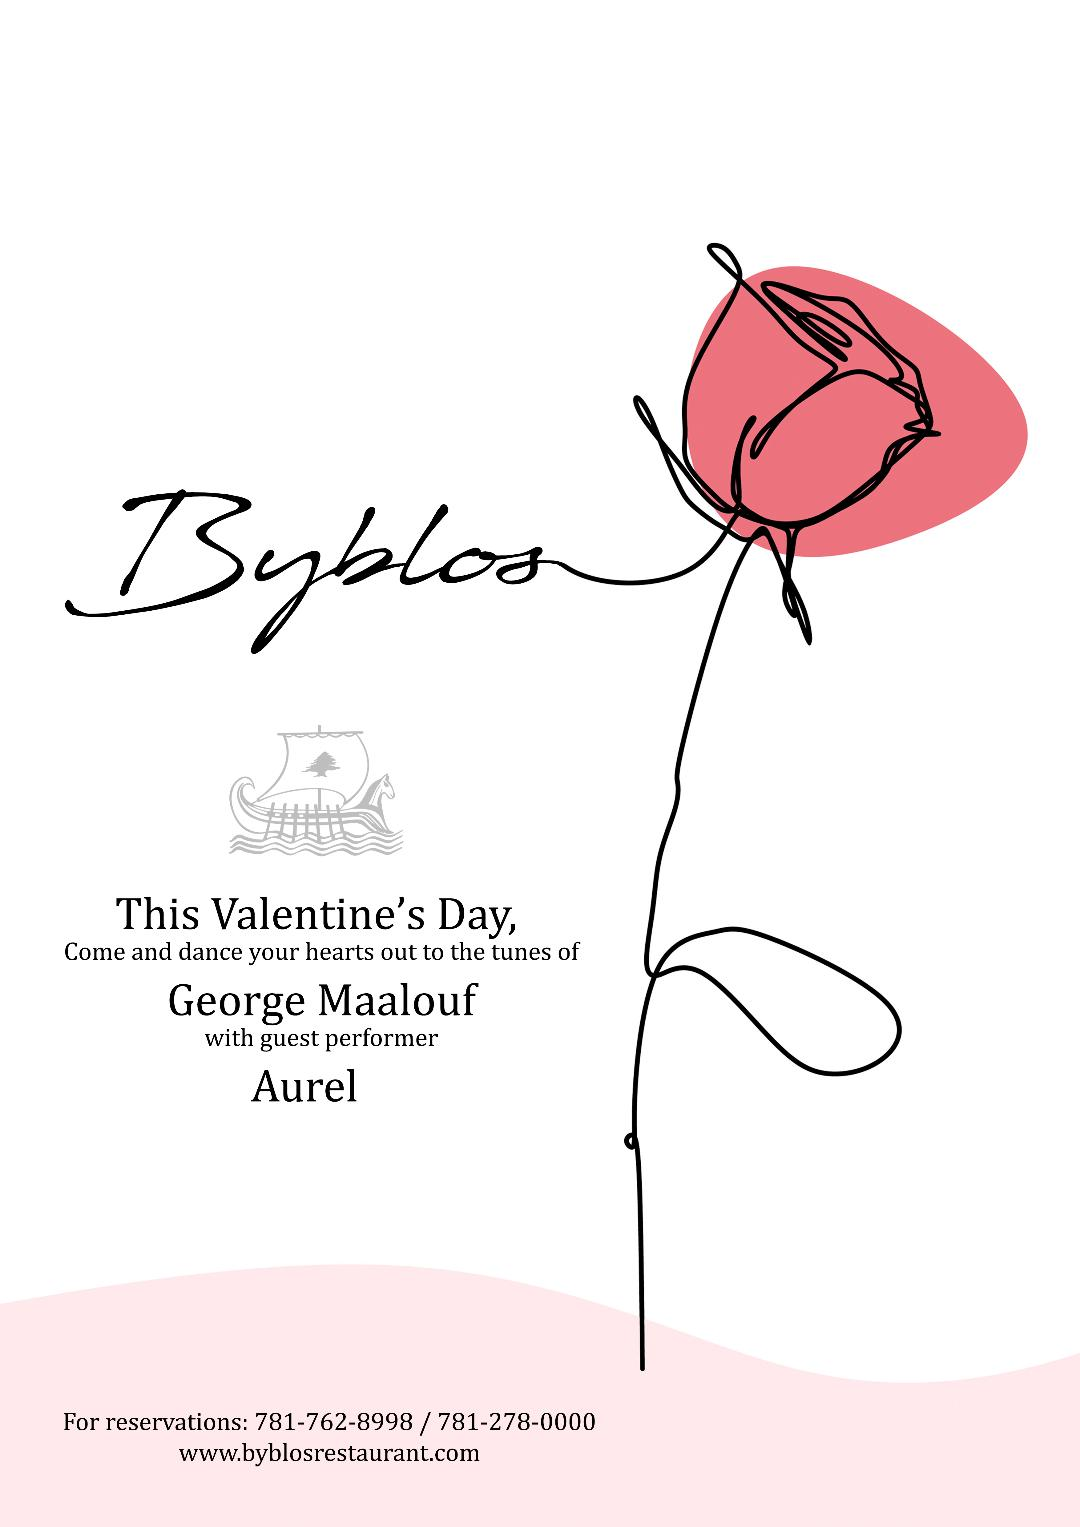 Byblos Restaurant Valentine's Day Event 2020